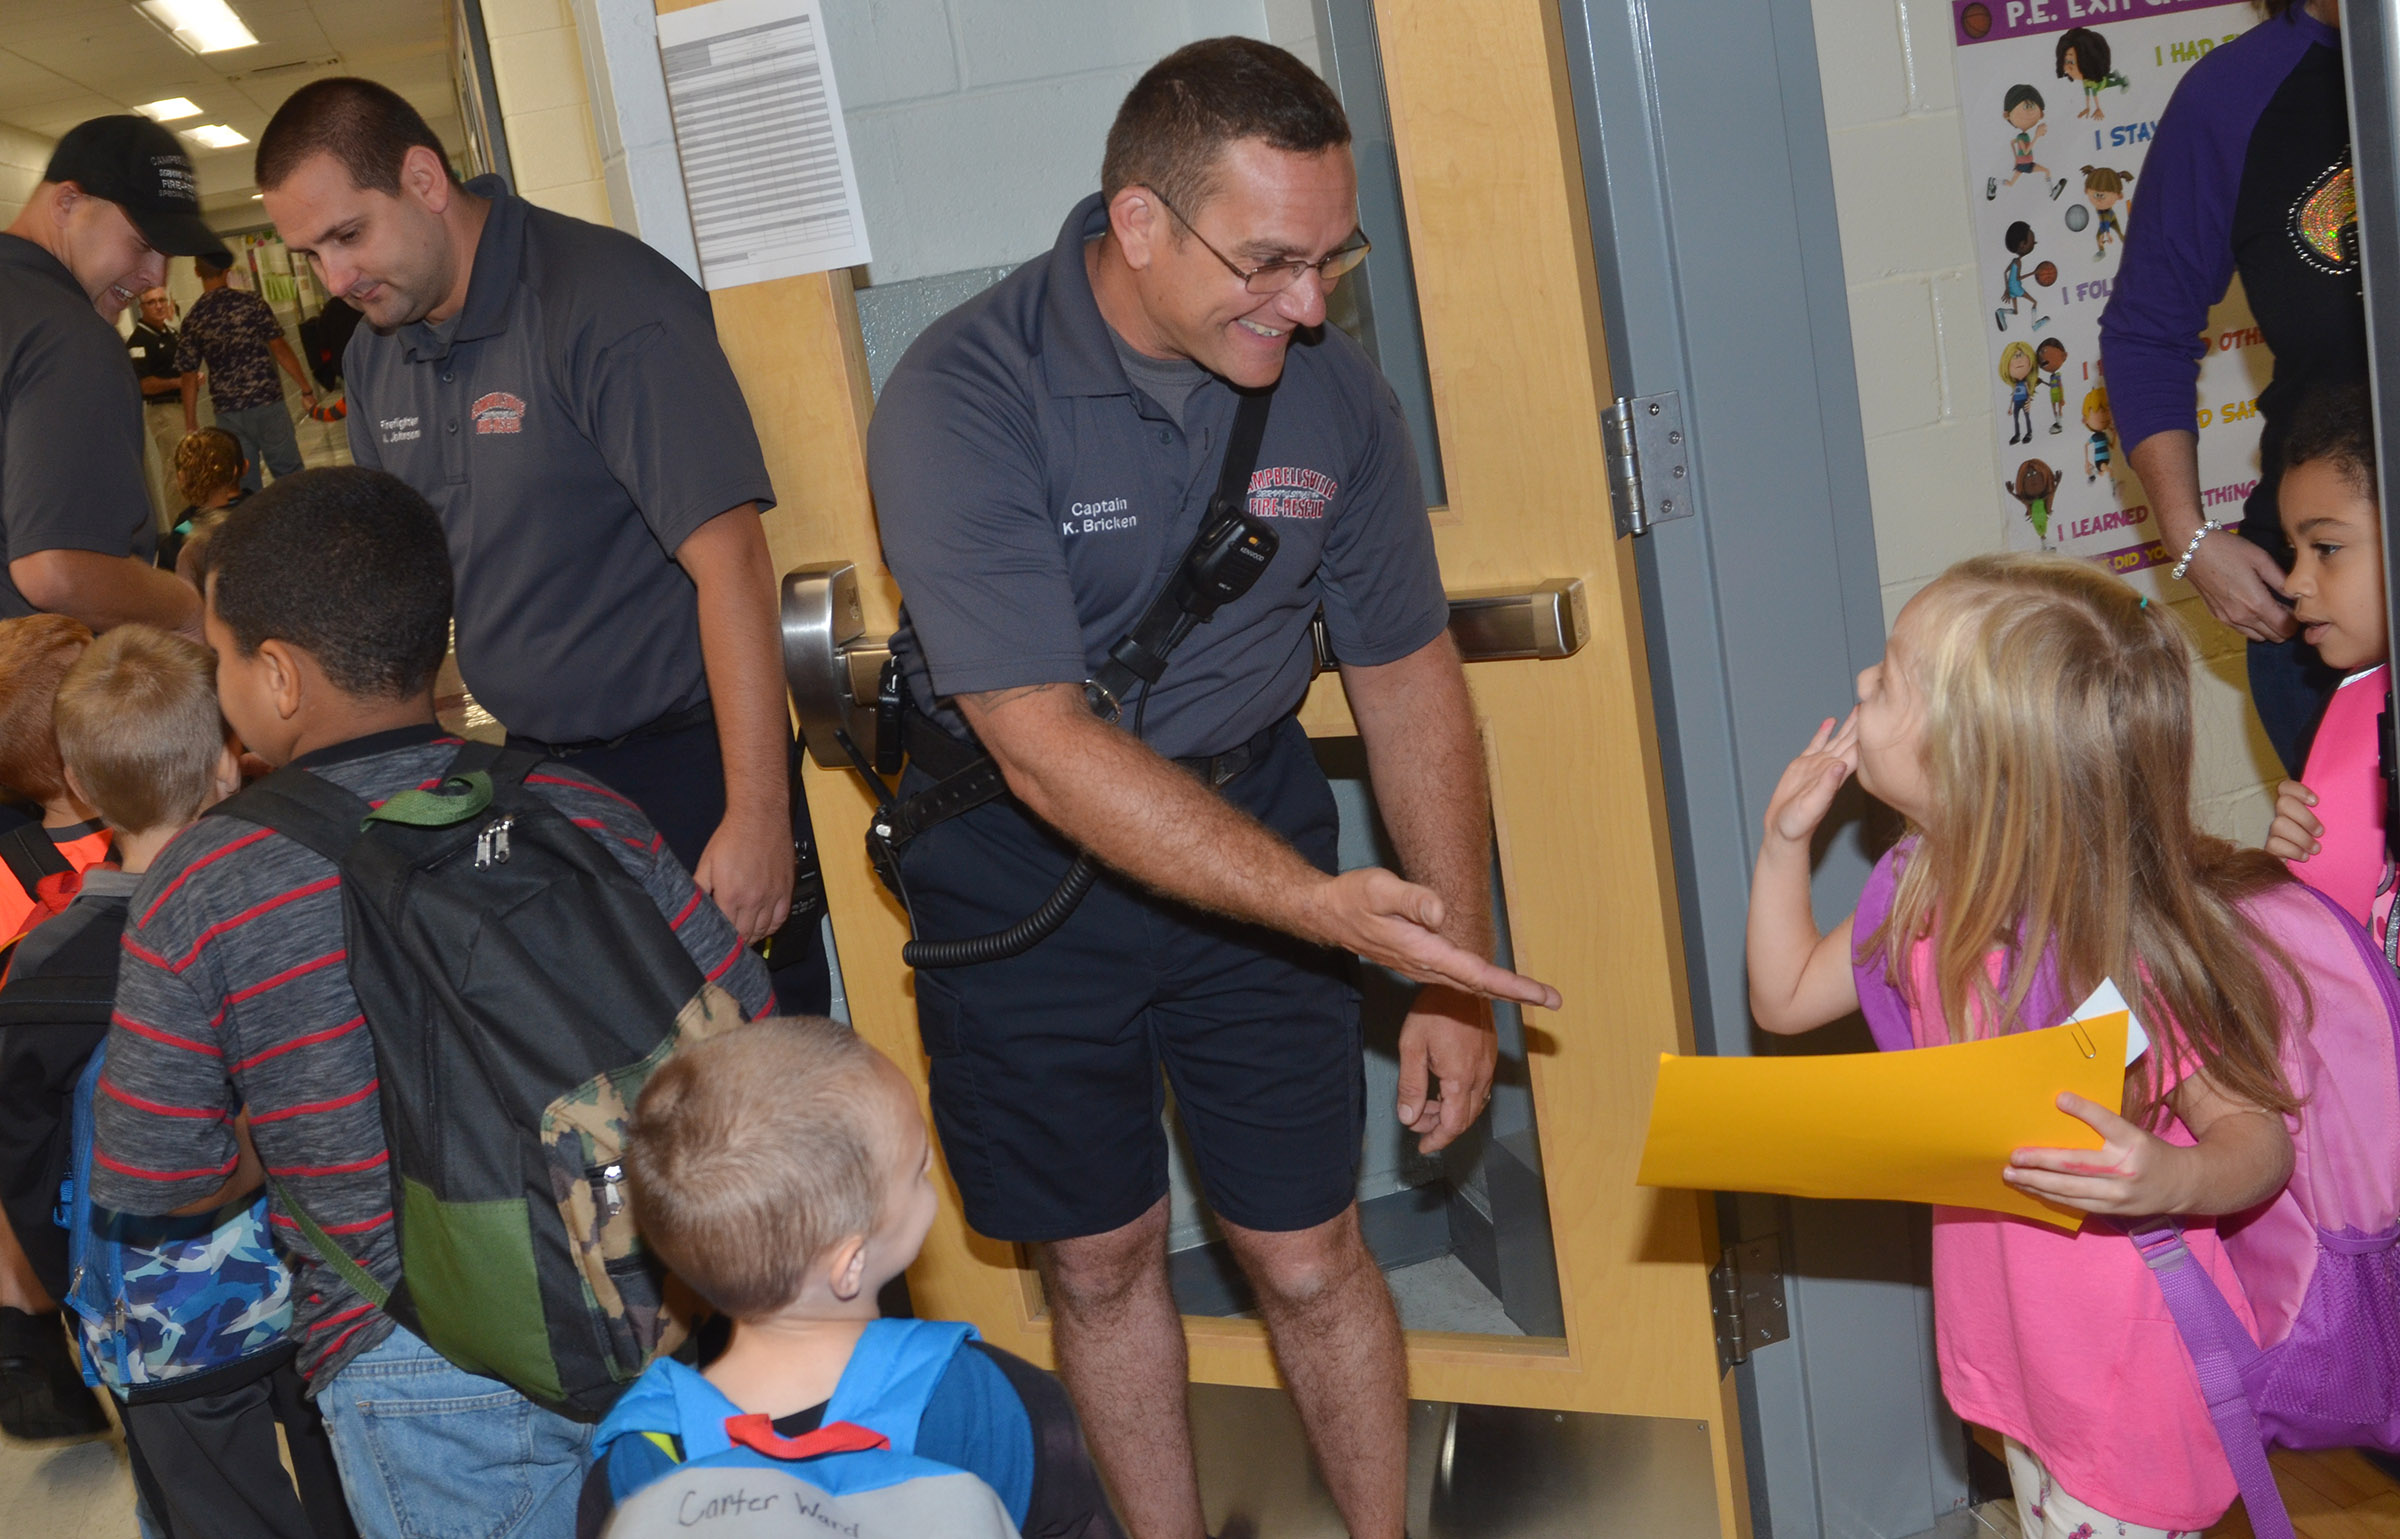 Campbellsville Fire & Rescue Captain Keith Bricken, center, and firefighters Daniel Lovett, at left, and Alex Johnson greet CES students.